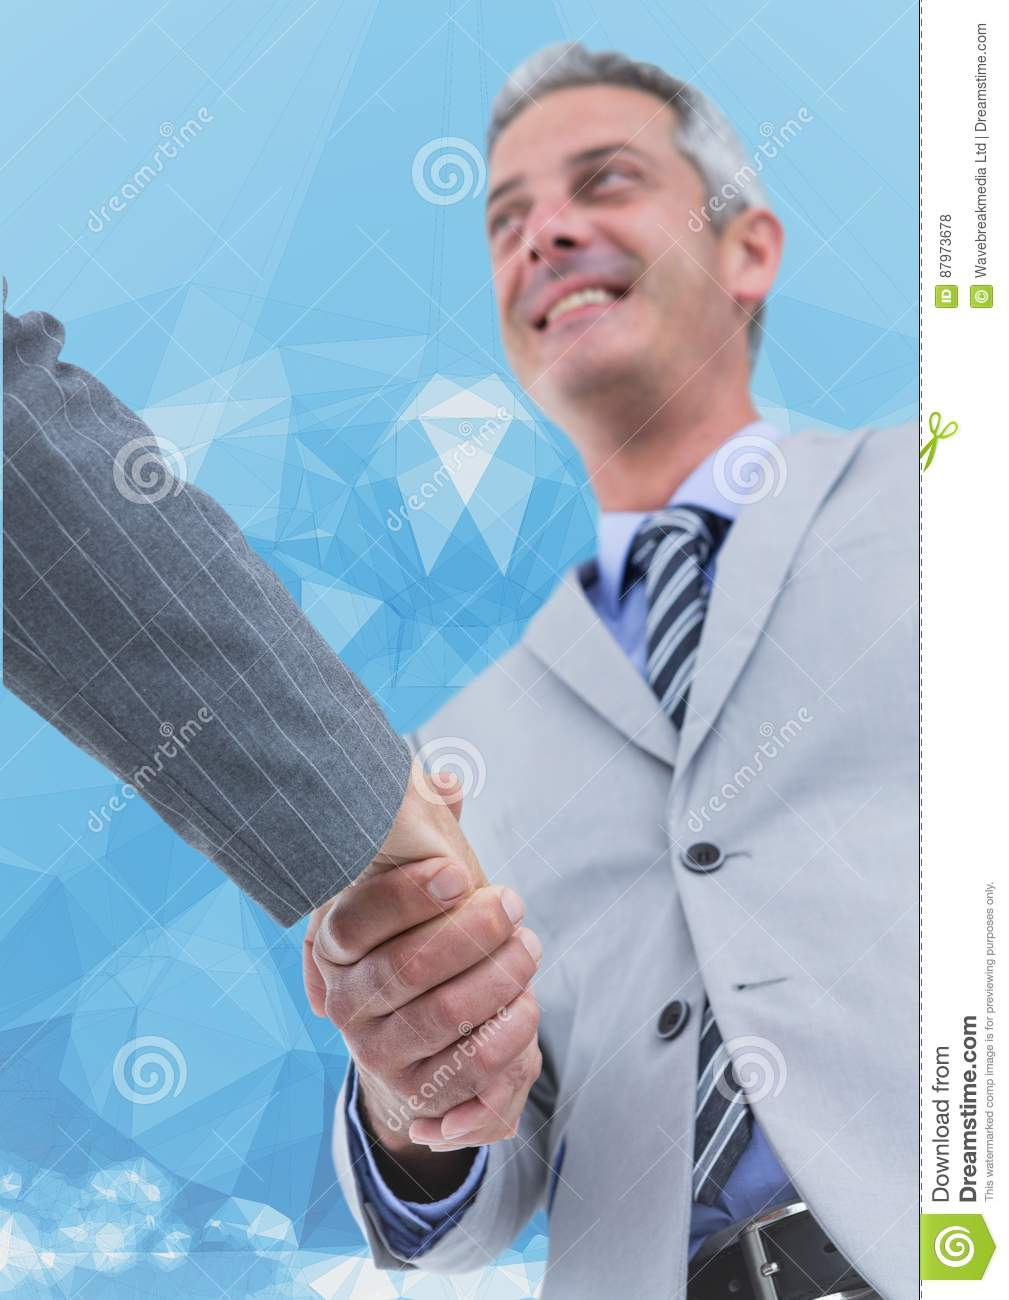 Business executives shaking hands against blue background